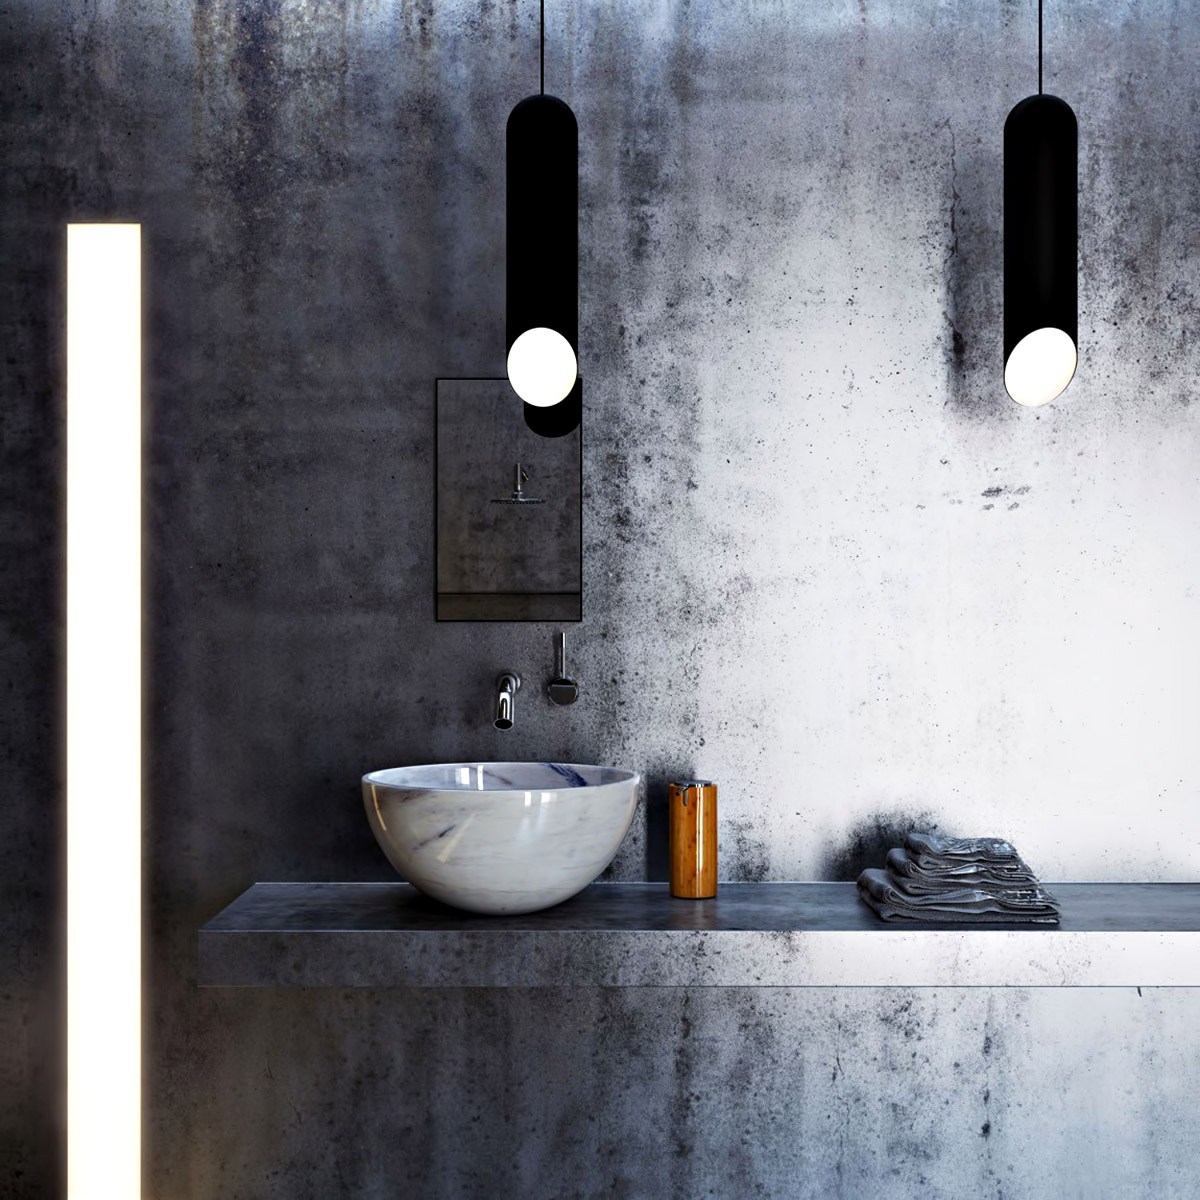 bathroom – ex machina film inspires architecture for a writer's